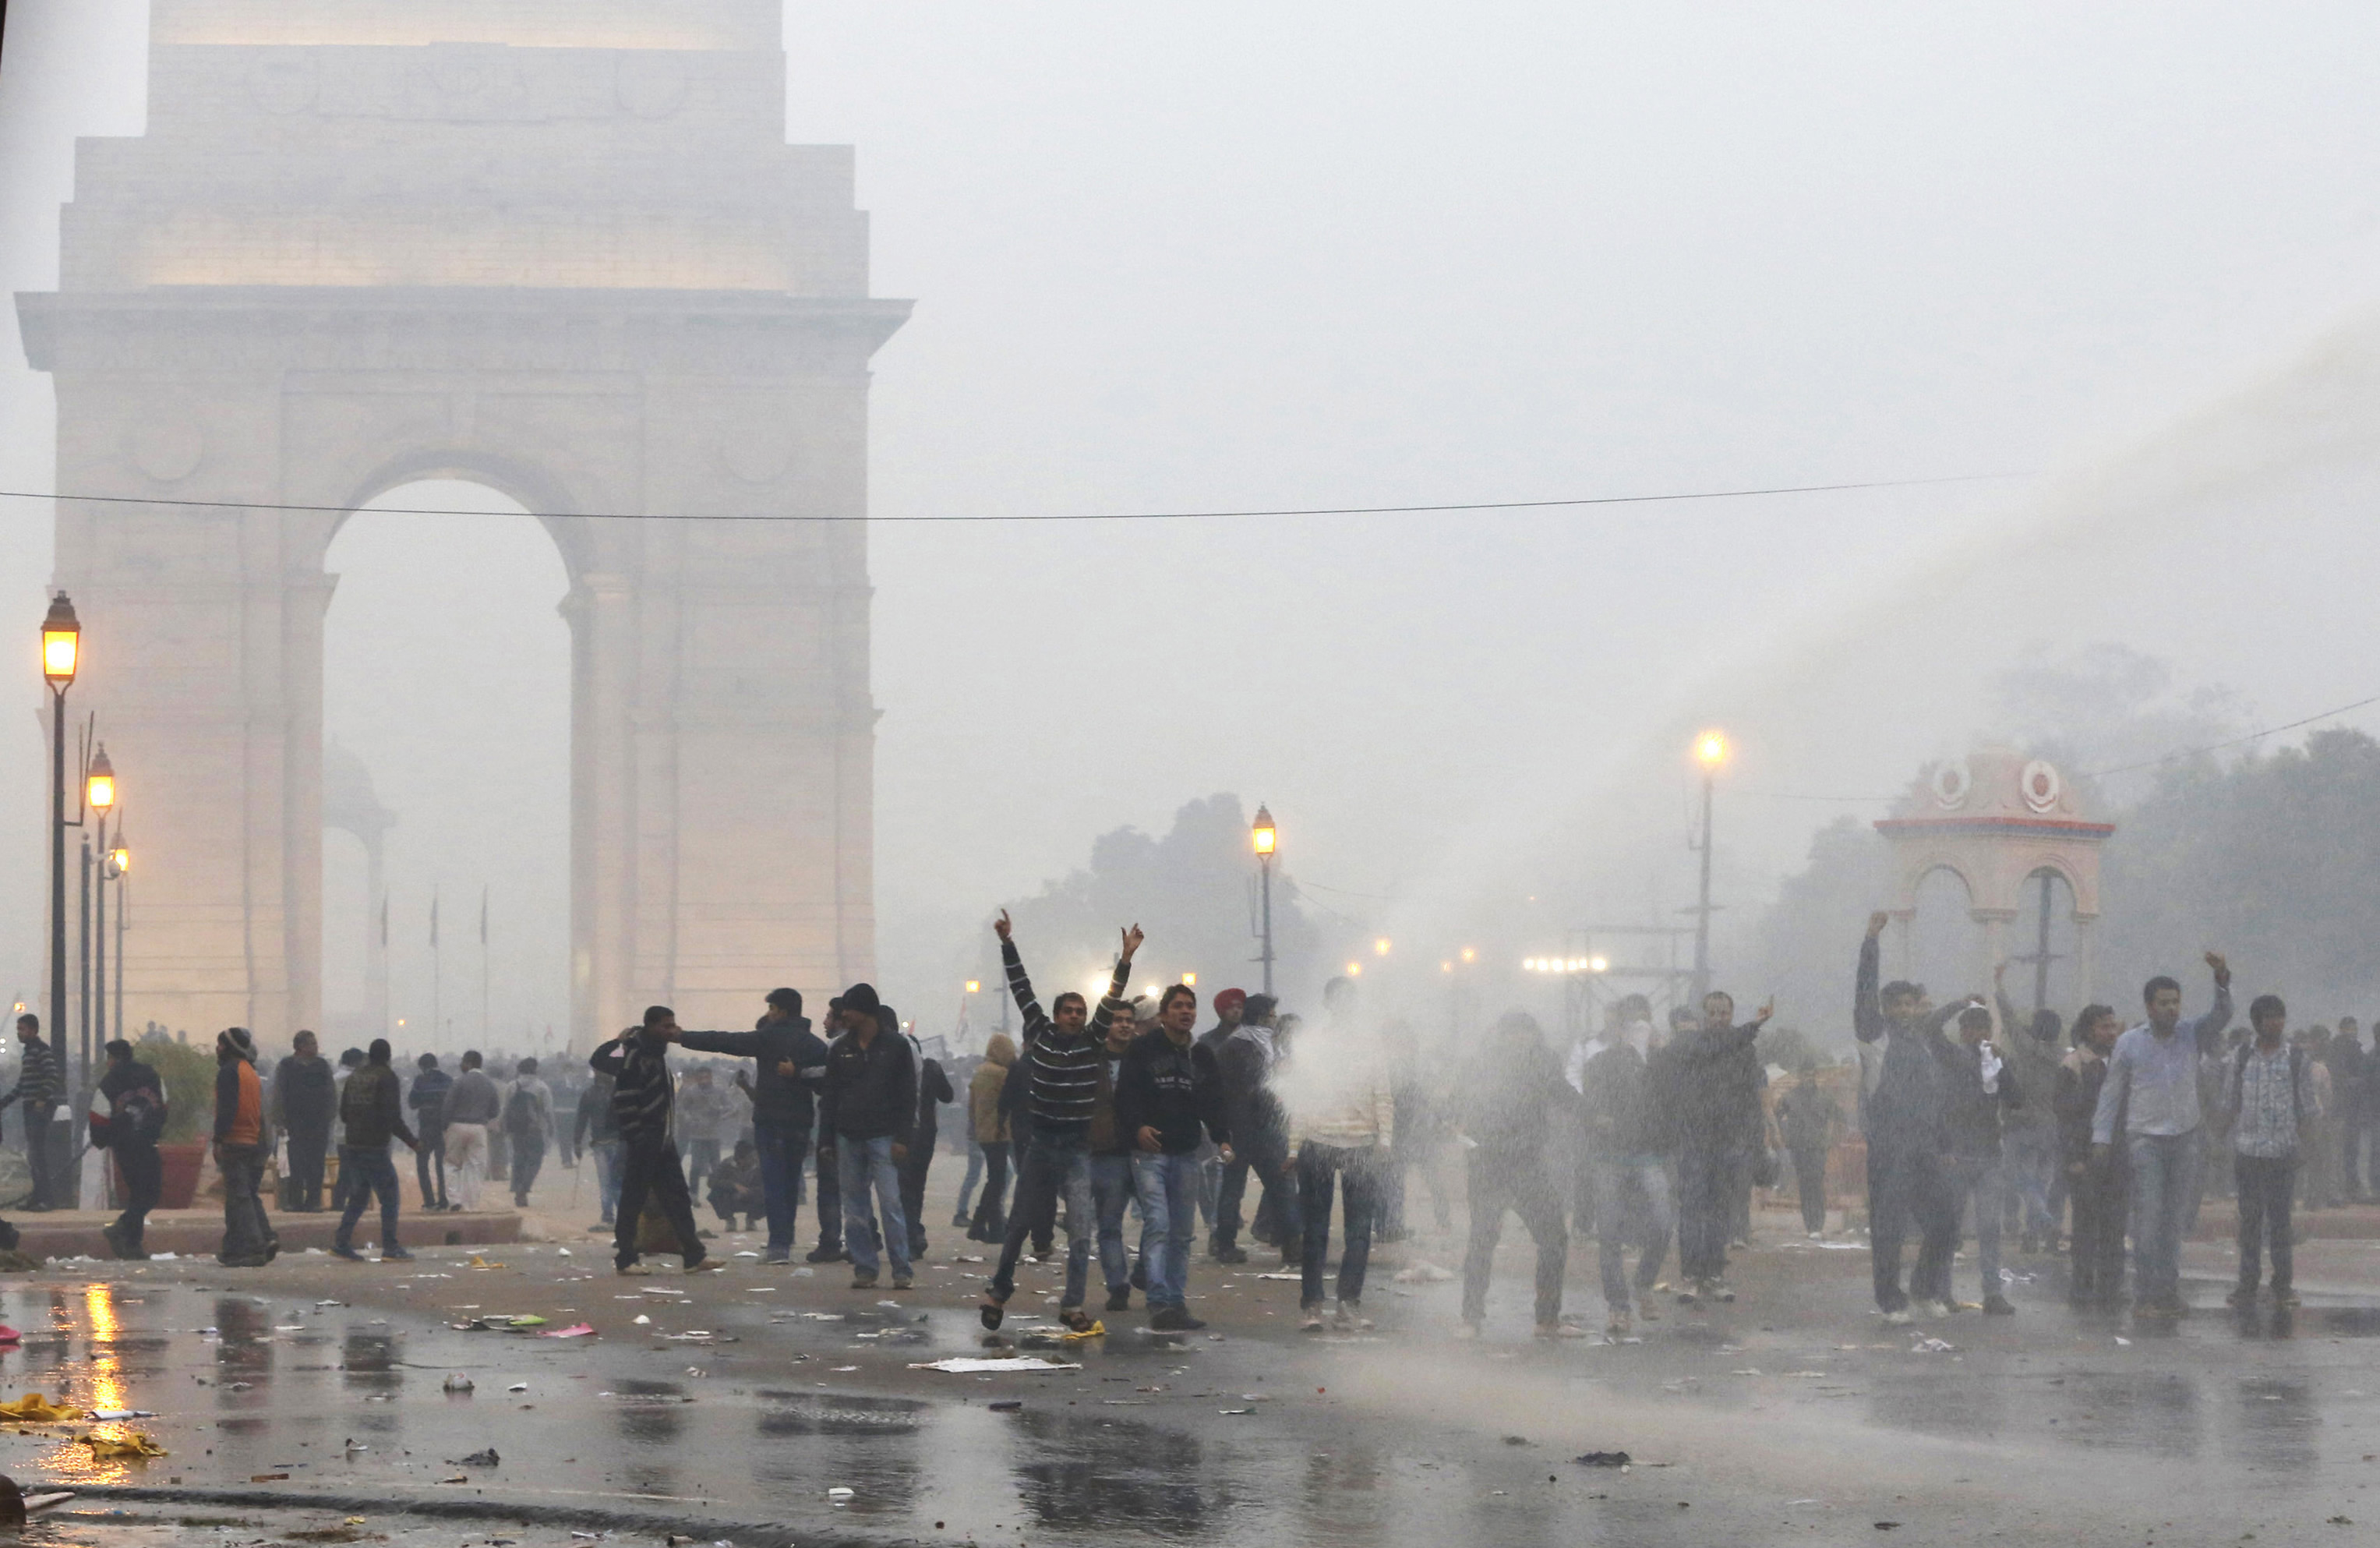 Protest against the Delhi gangrape at India Gate in December 2012. Photo credit: Reuters